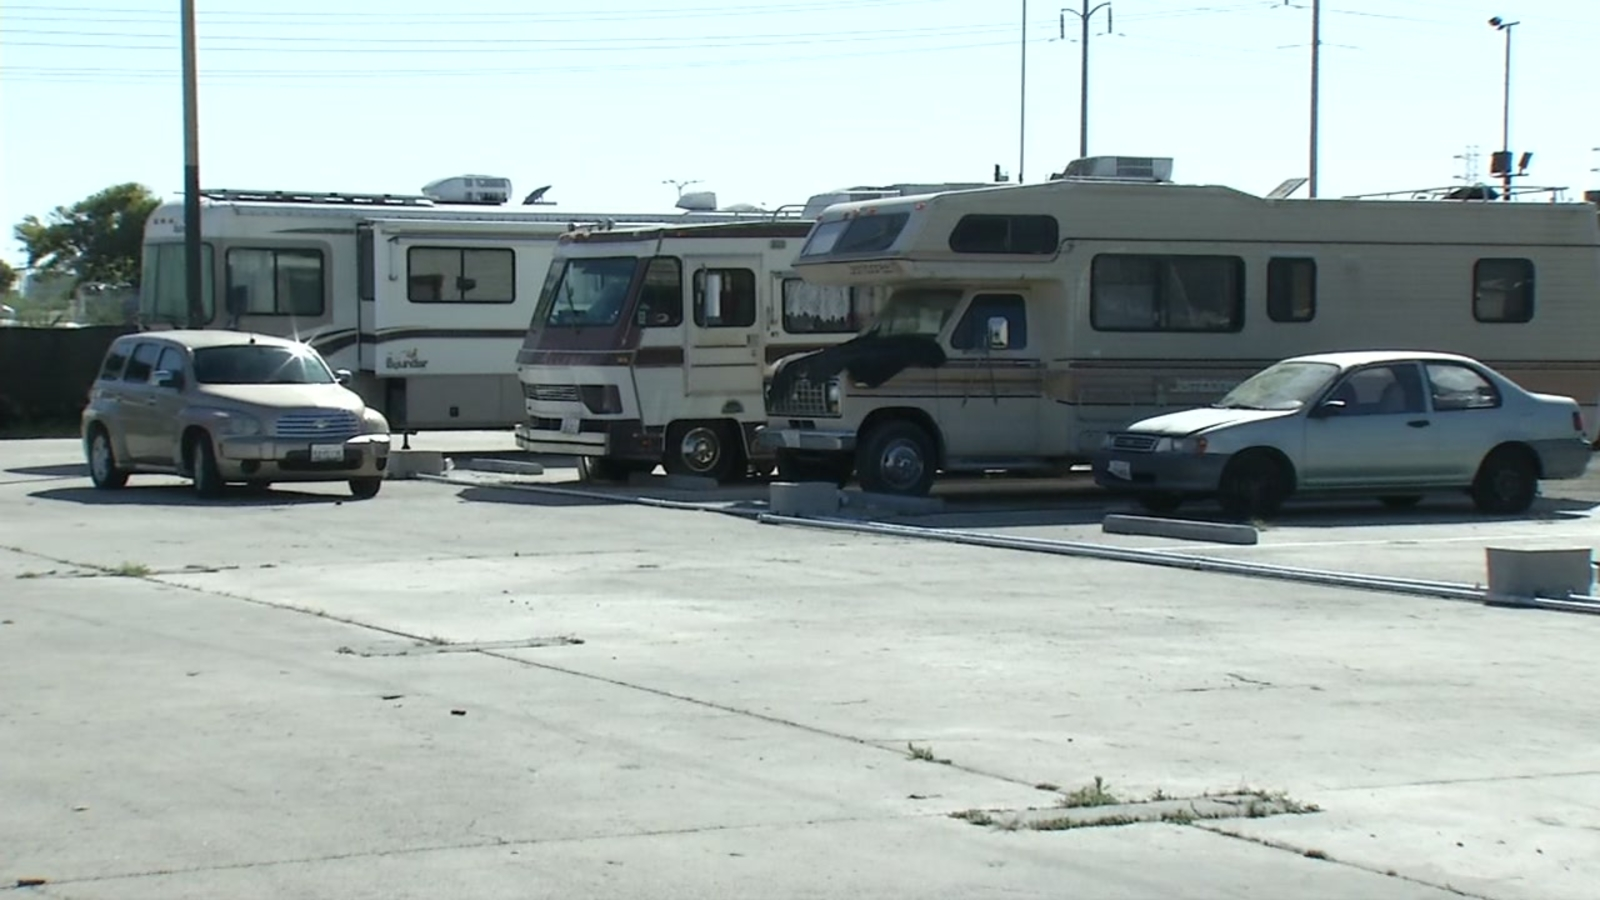 New city-sanctioned 'Safe RV Lot' opens in Oakland